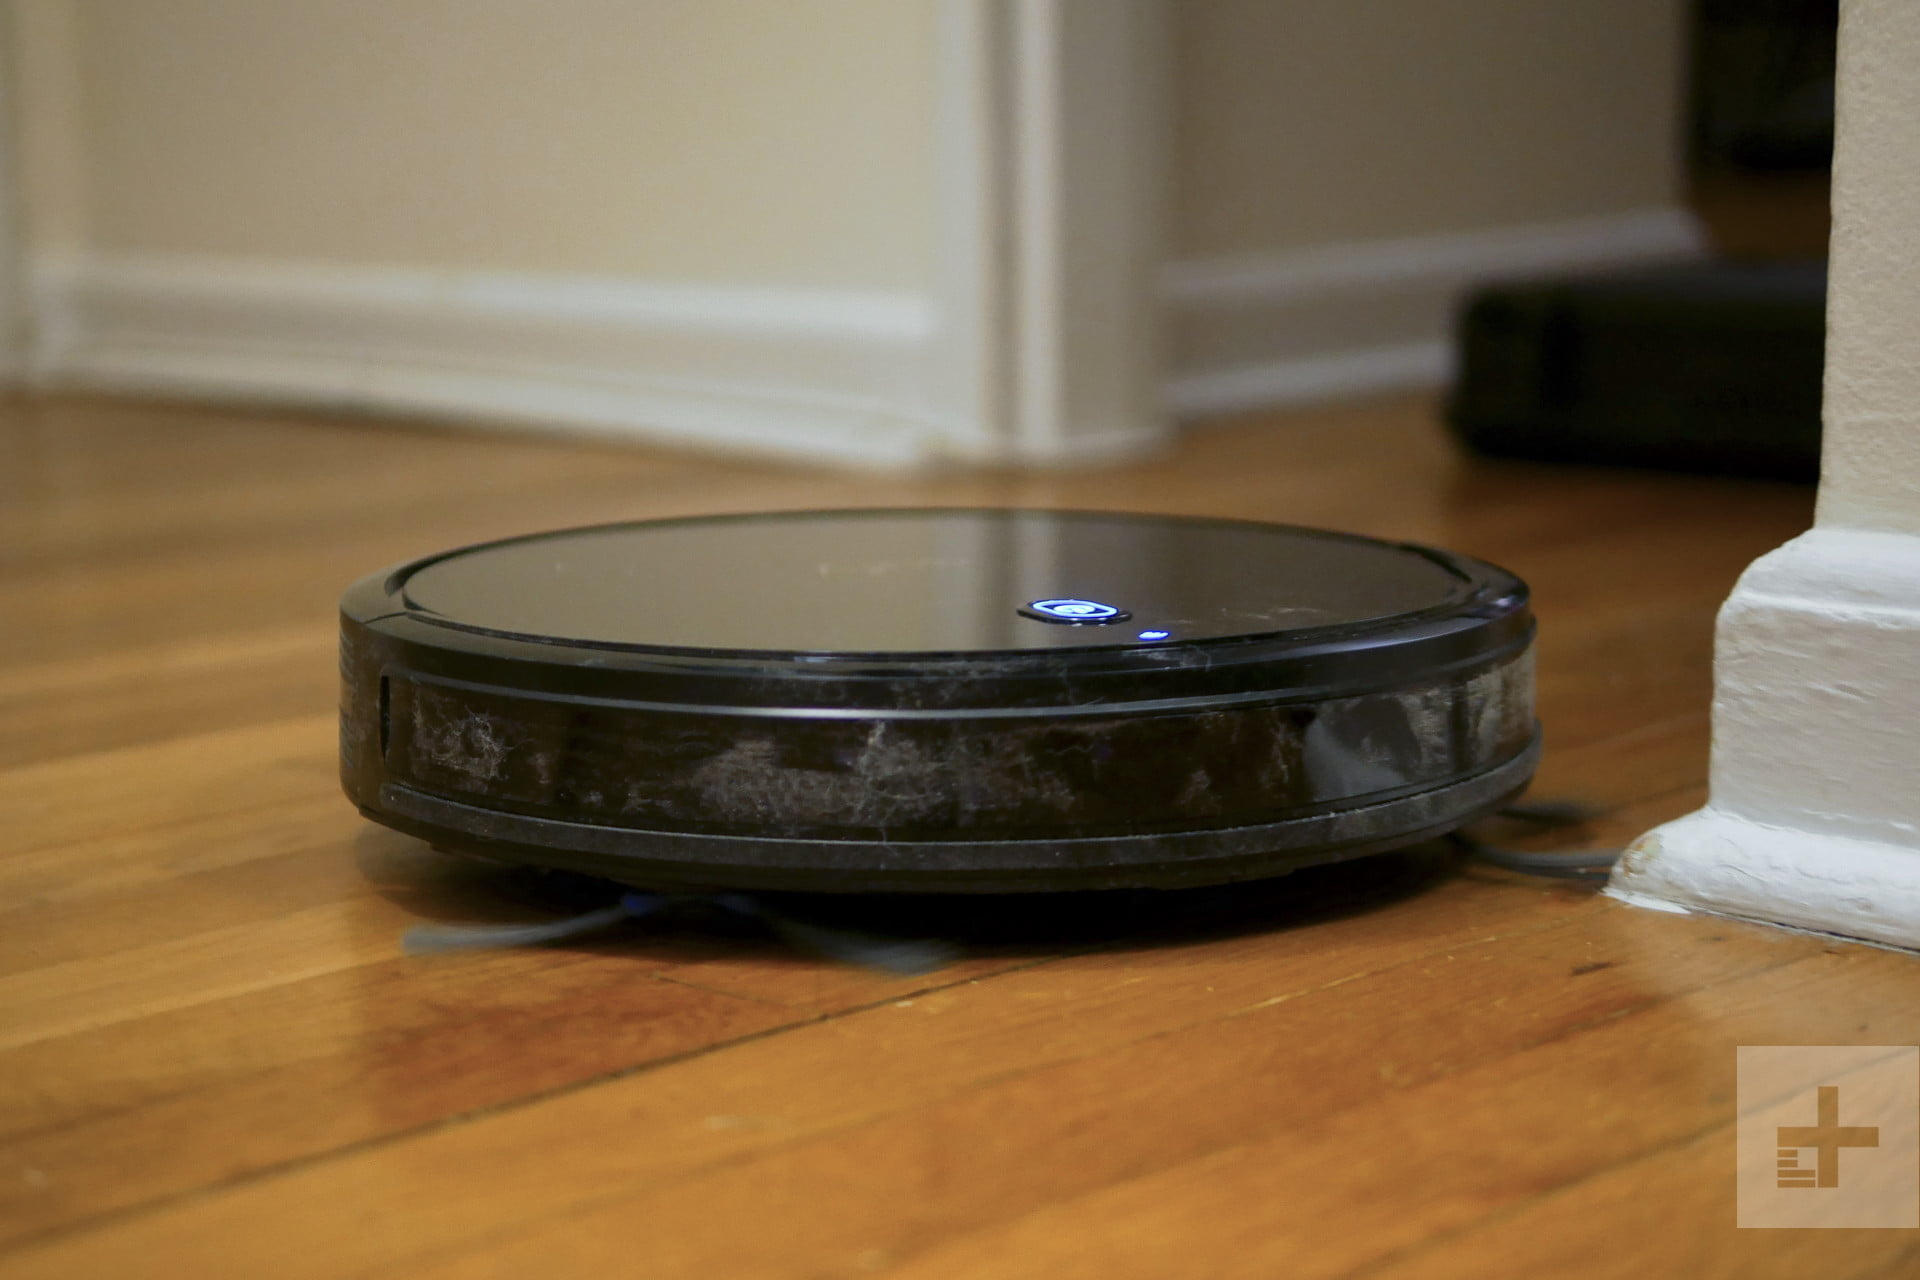 The Best Robot Vacuums for Pet Hair | Digital Trends